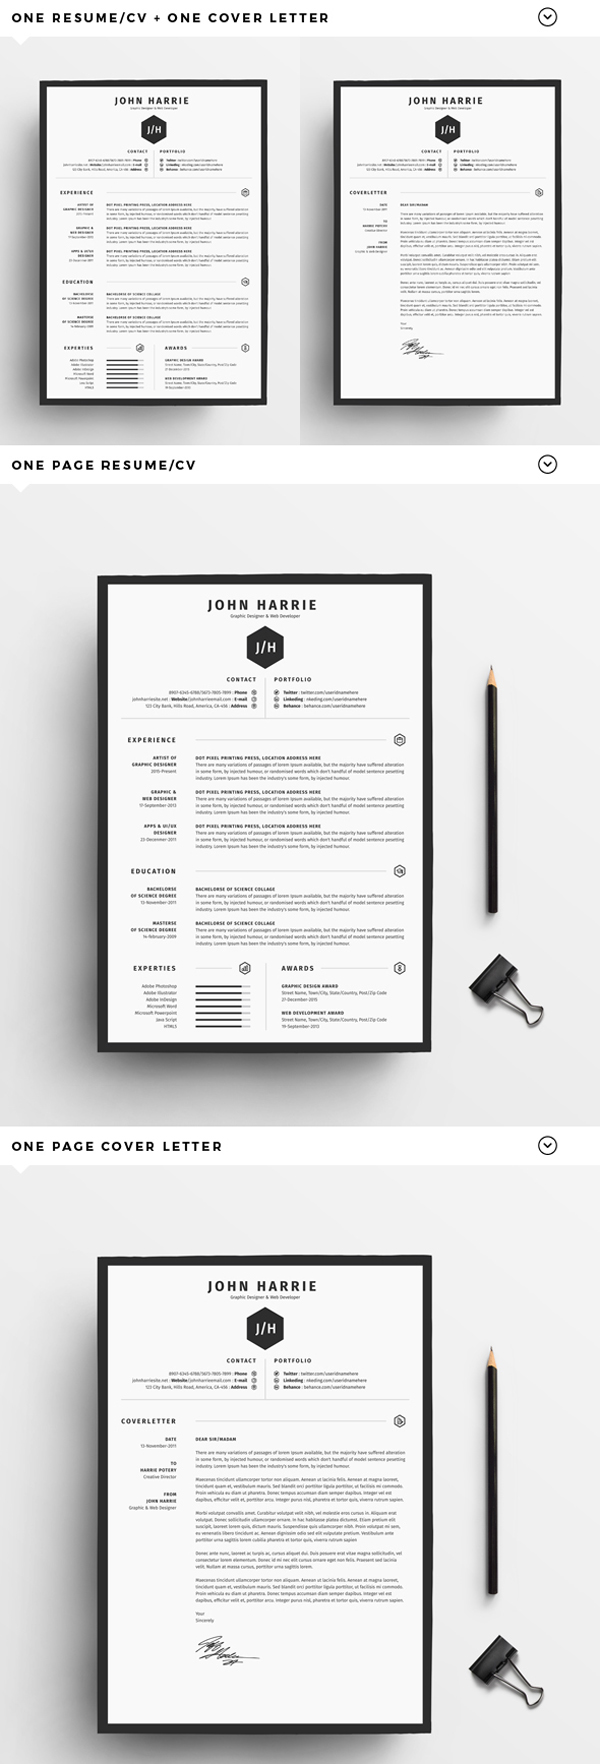 23 free creative resume templates with cover letter freebies free resumecv cover letter madrichimfo Image collections